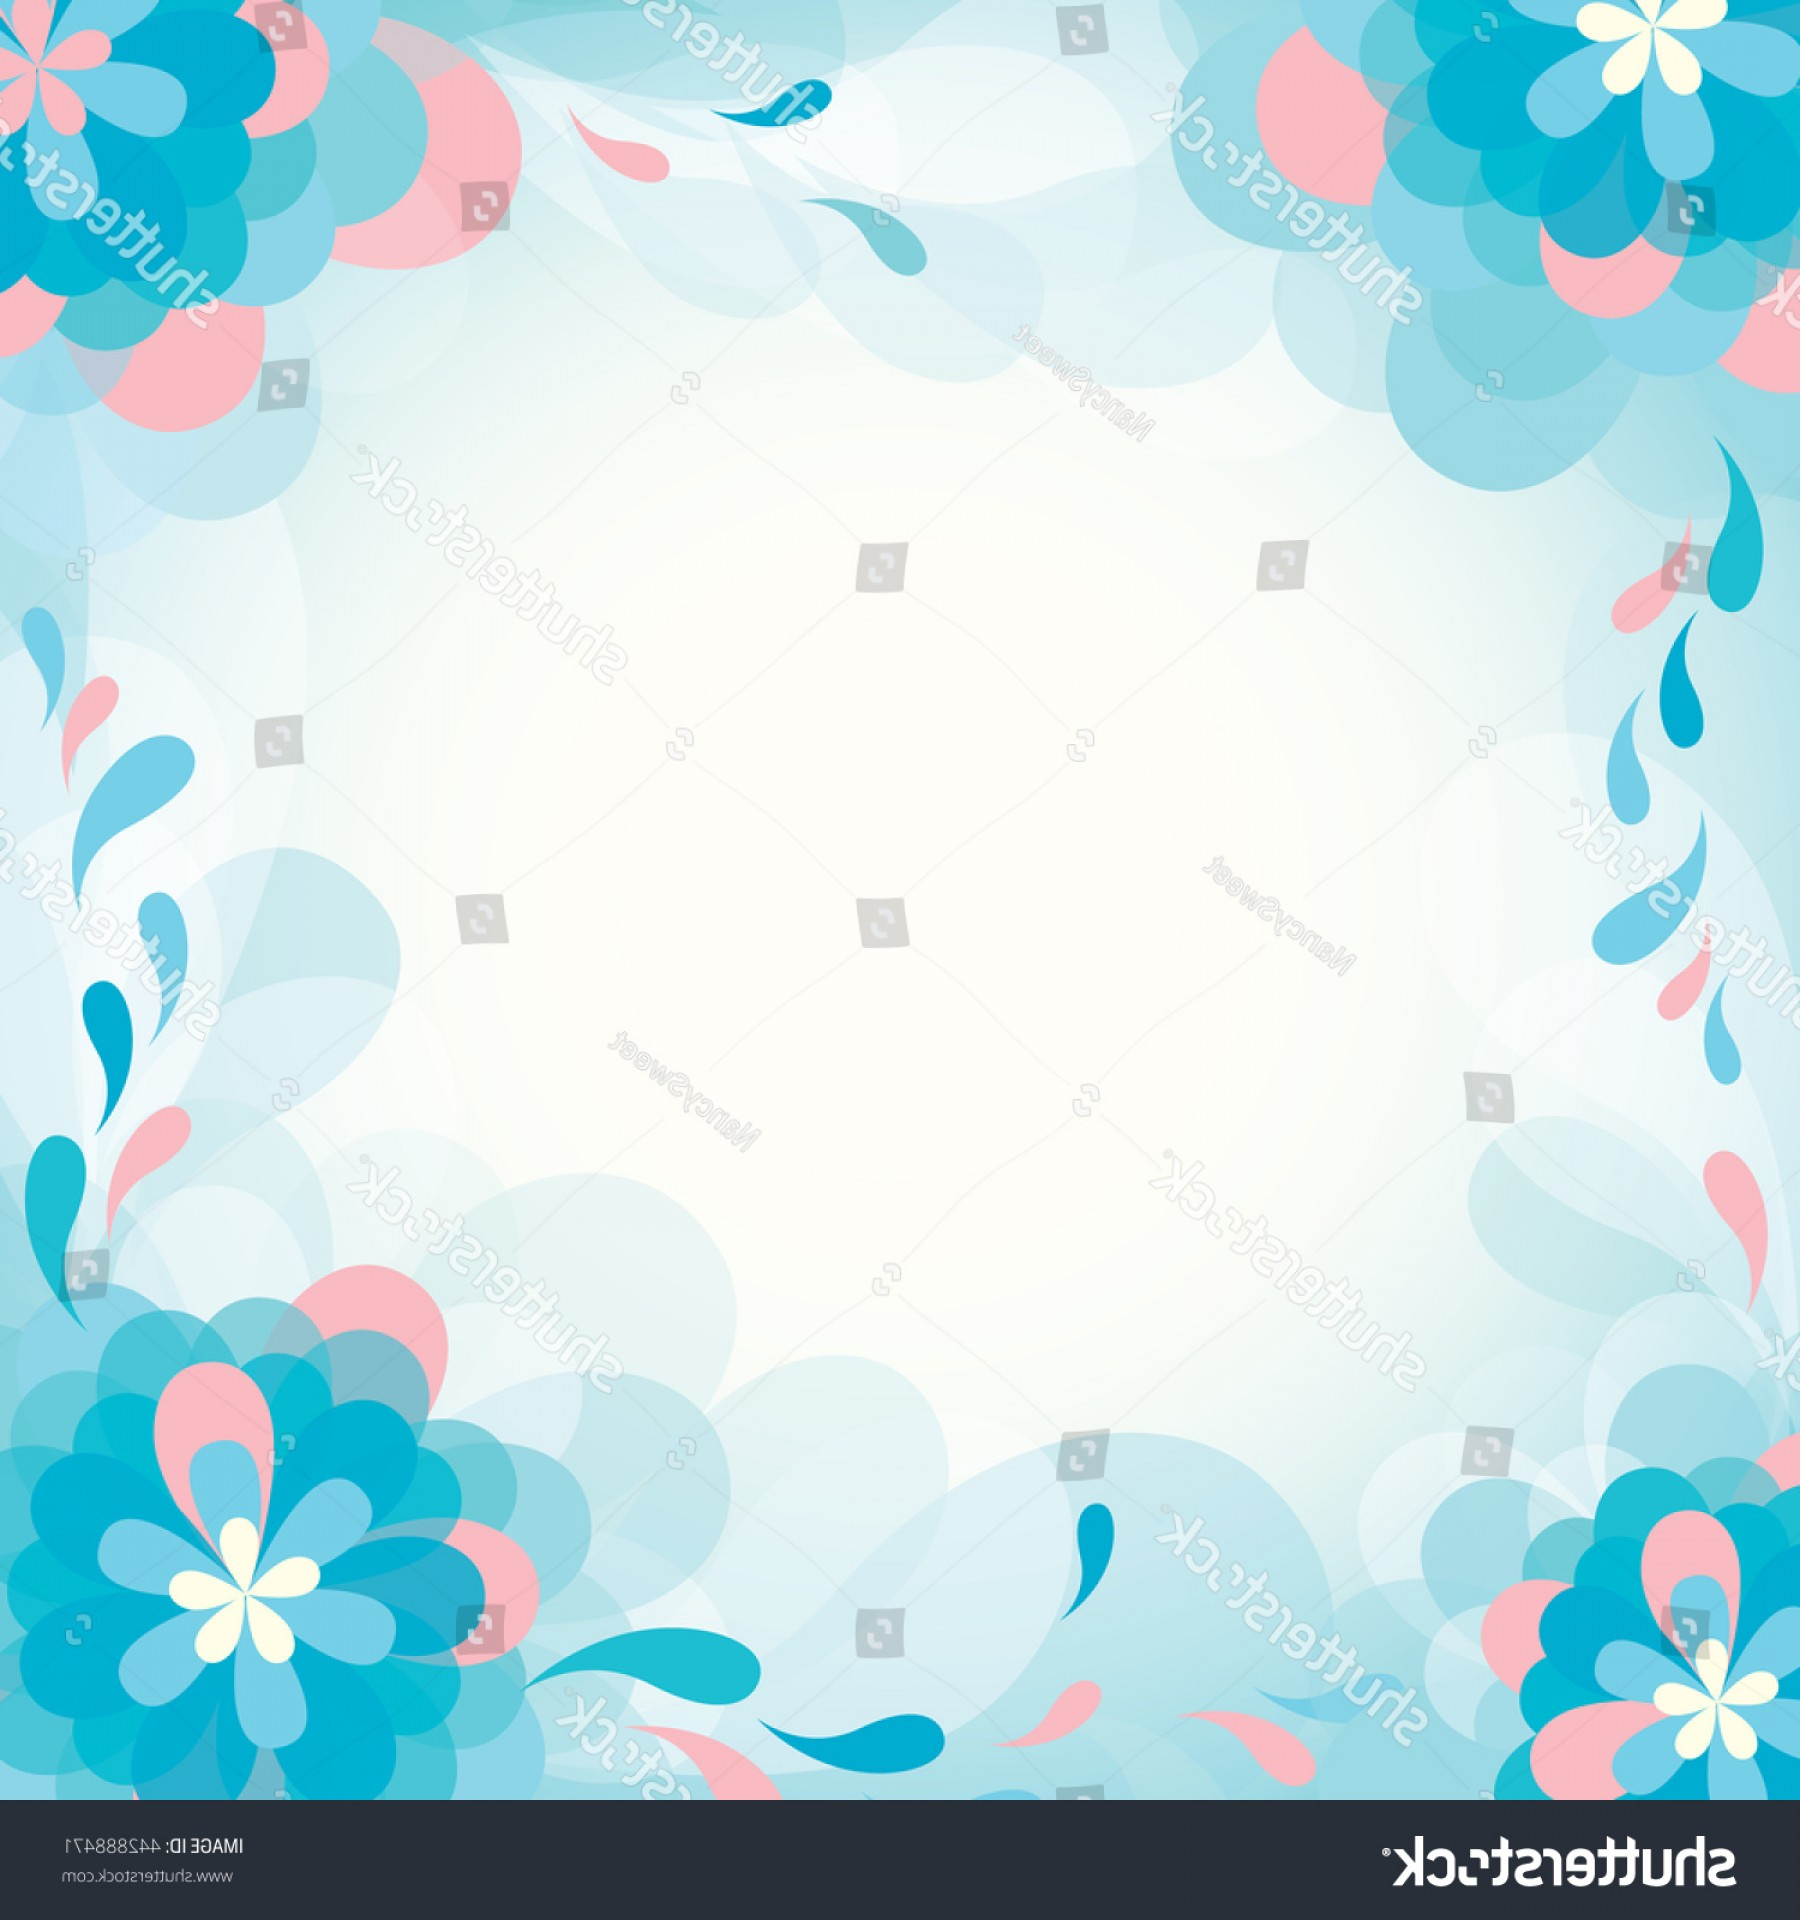 Blue Vector Border Frame: Vector Border Frame Blue Flowers Background